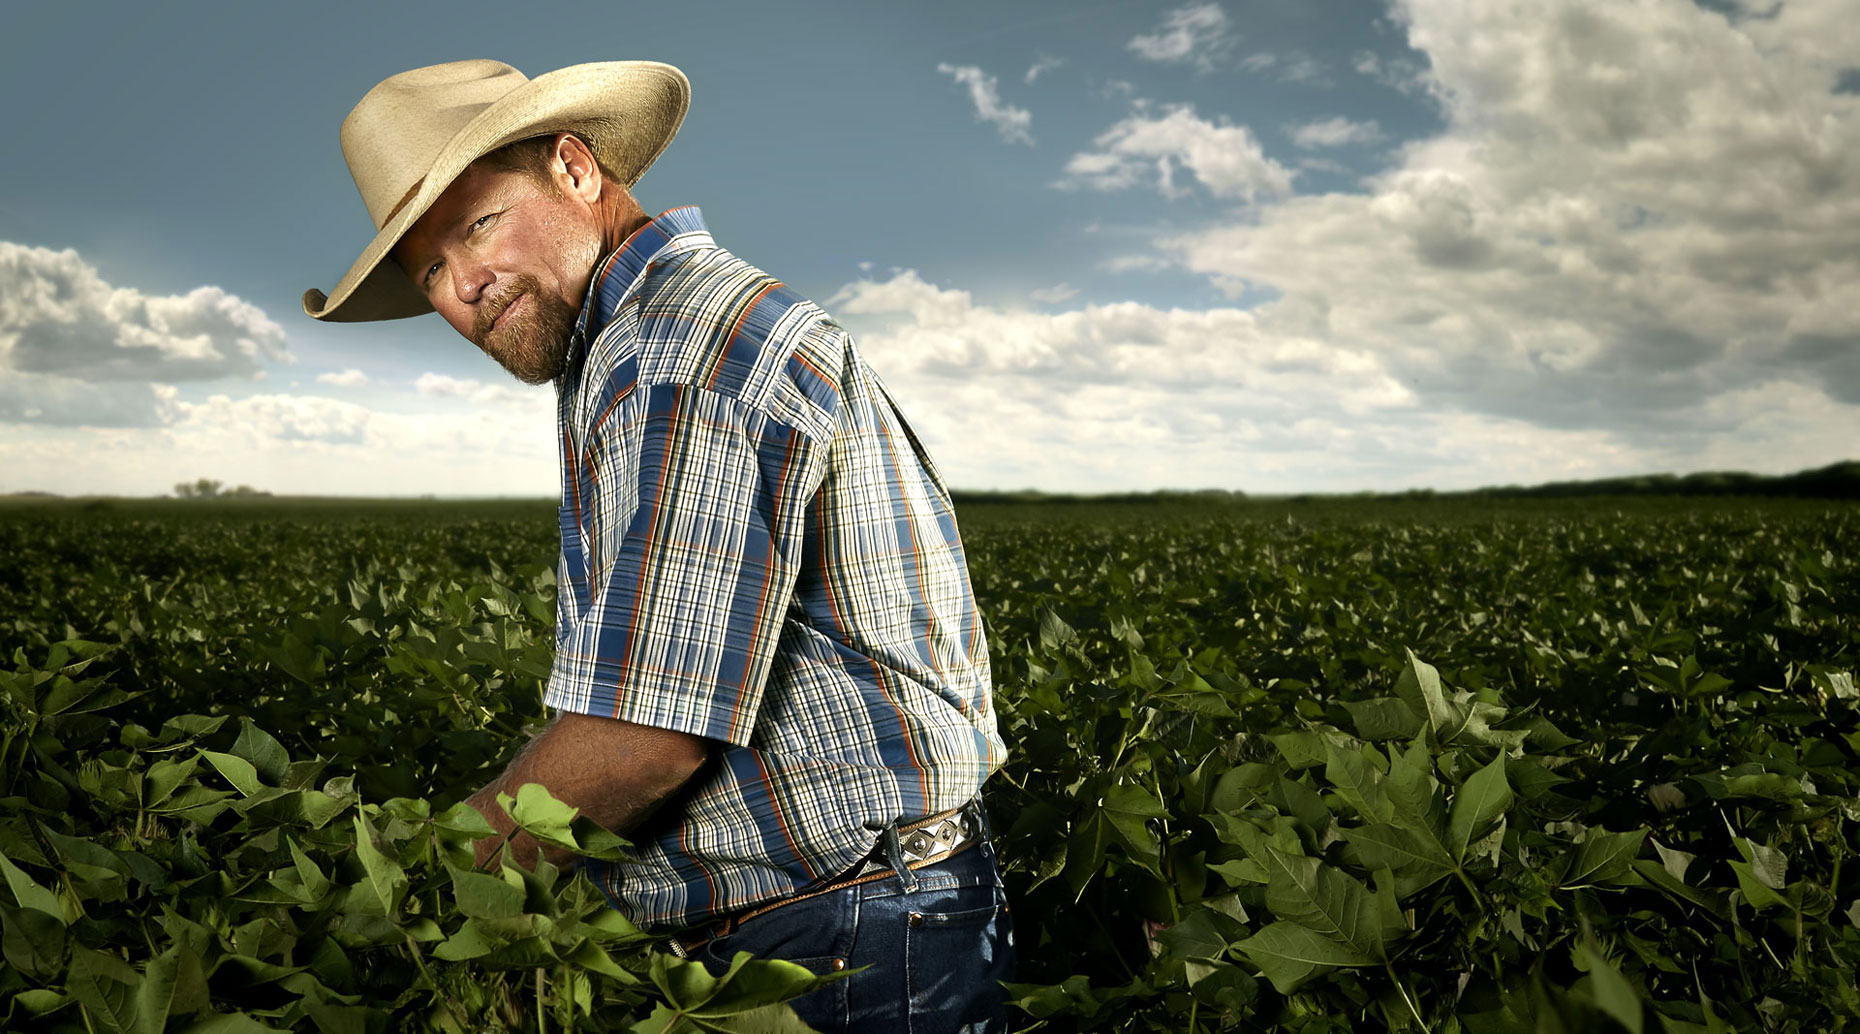 Bayer Crop Science_024| Robert Randall Advertising Photographer, Commercial Photographer, CGI, Portrait, and Lifestyle Photography